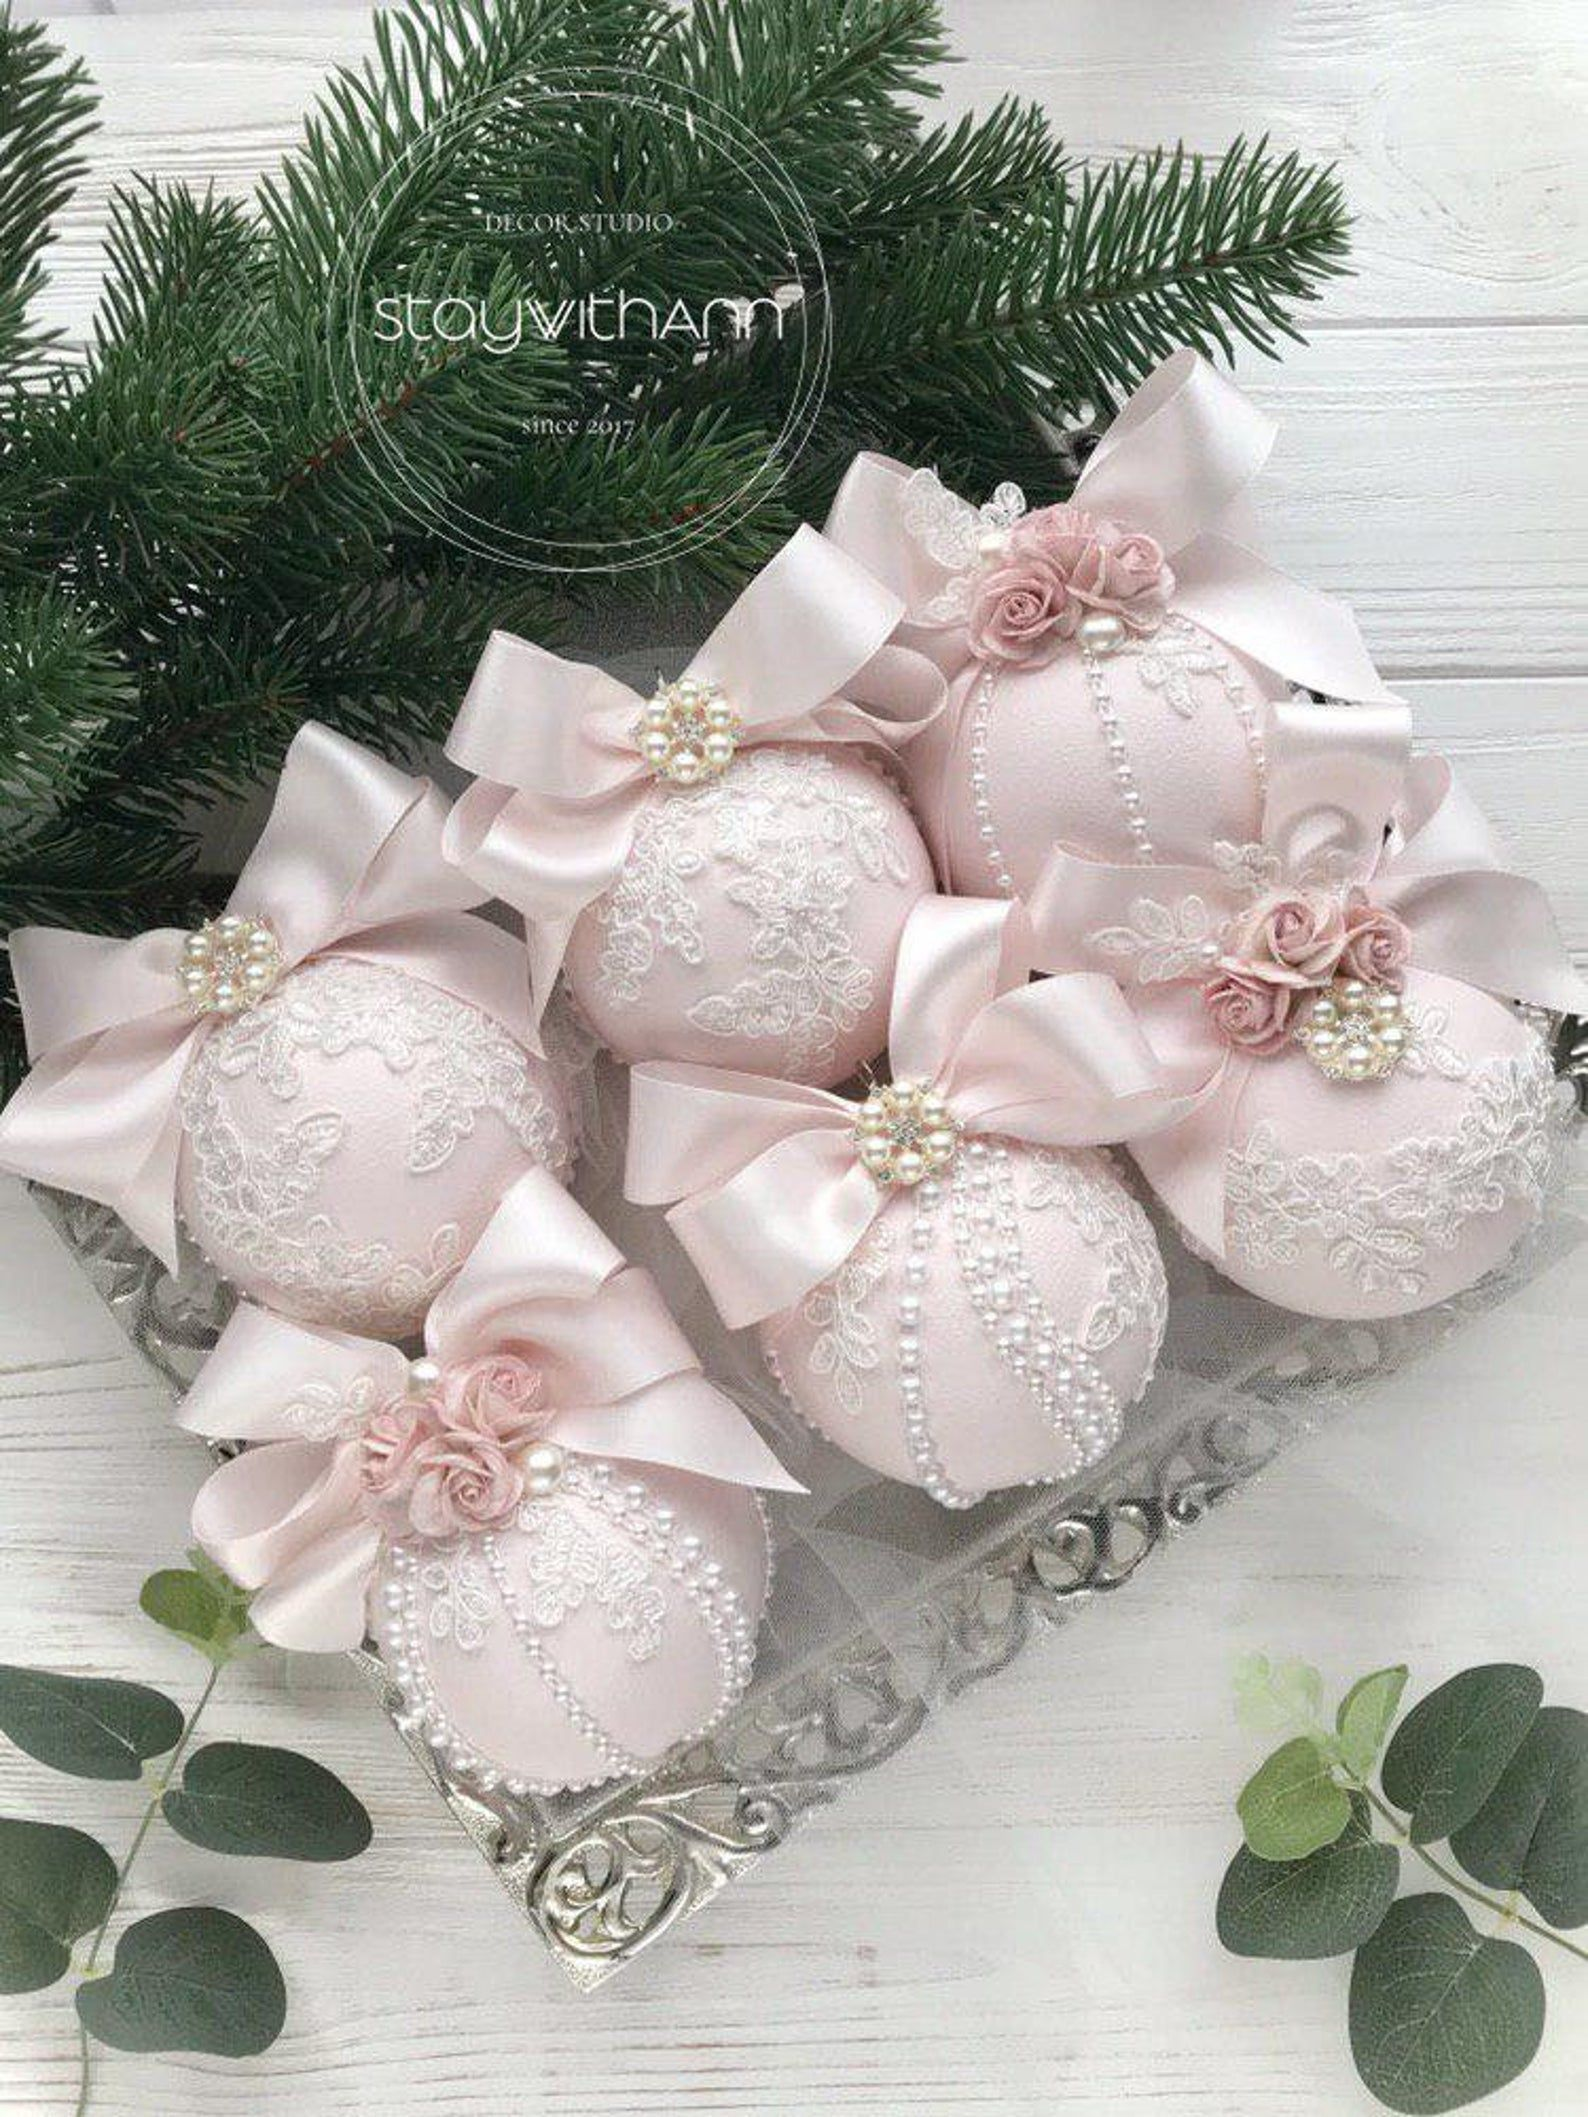 Christmas Ornaments Set of 6 Elegant Christmas Ornaments Lace Blush Pink Christmas Ornament Handmade Pearls Shabby Chic Christmas Tree Ideas